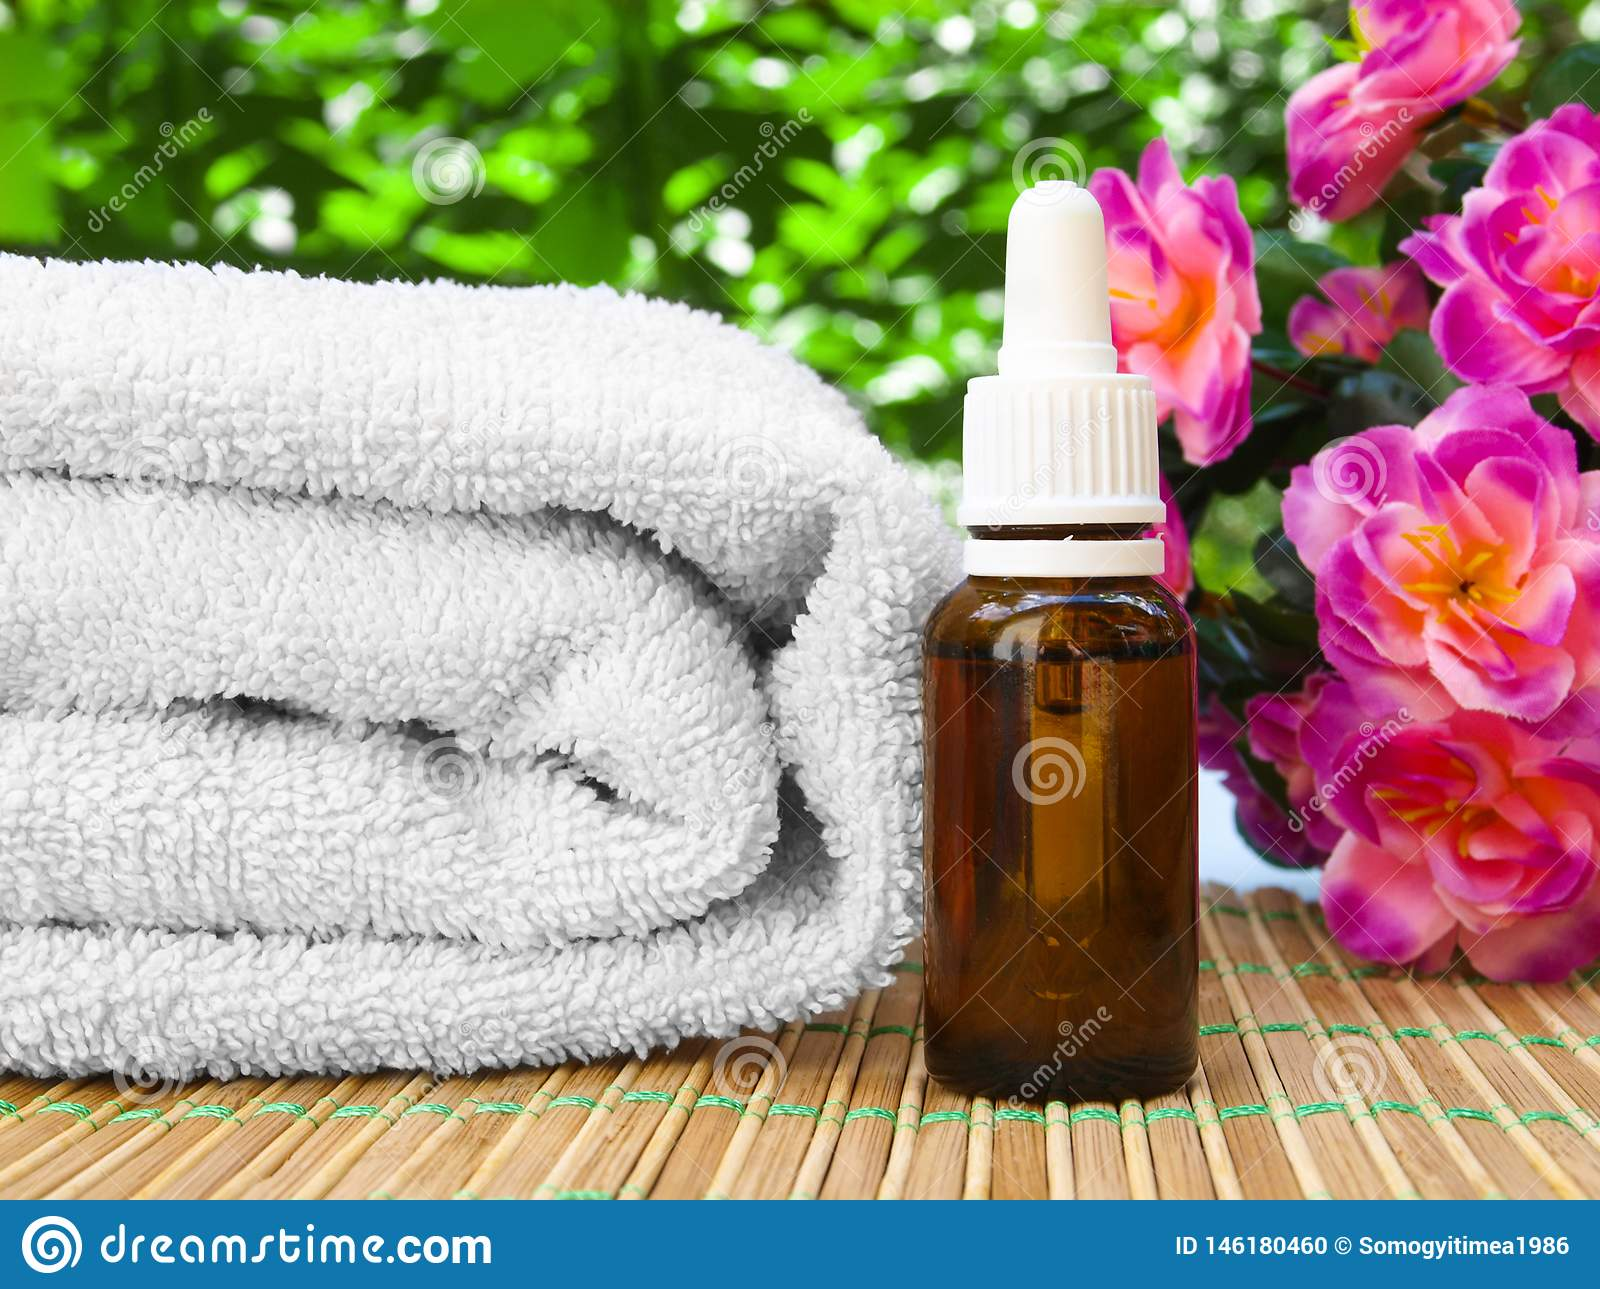 Floral spa and wellness design with oil bottle, towel